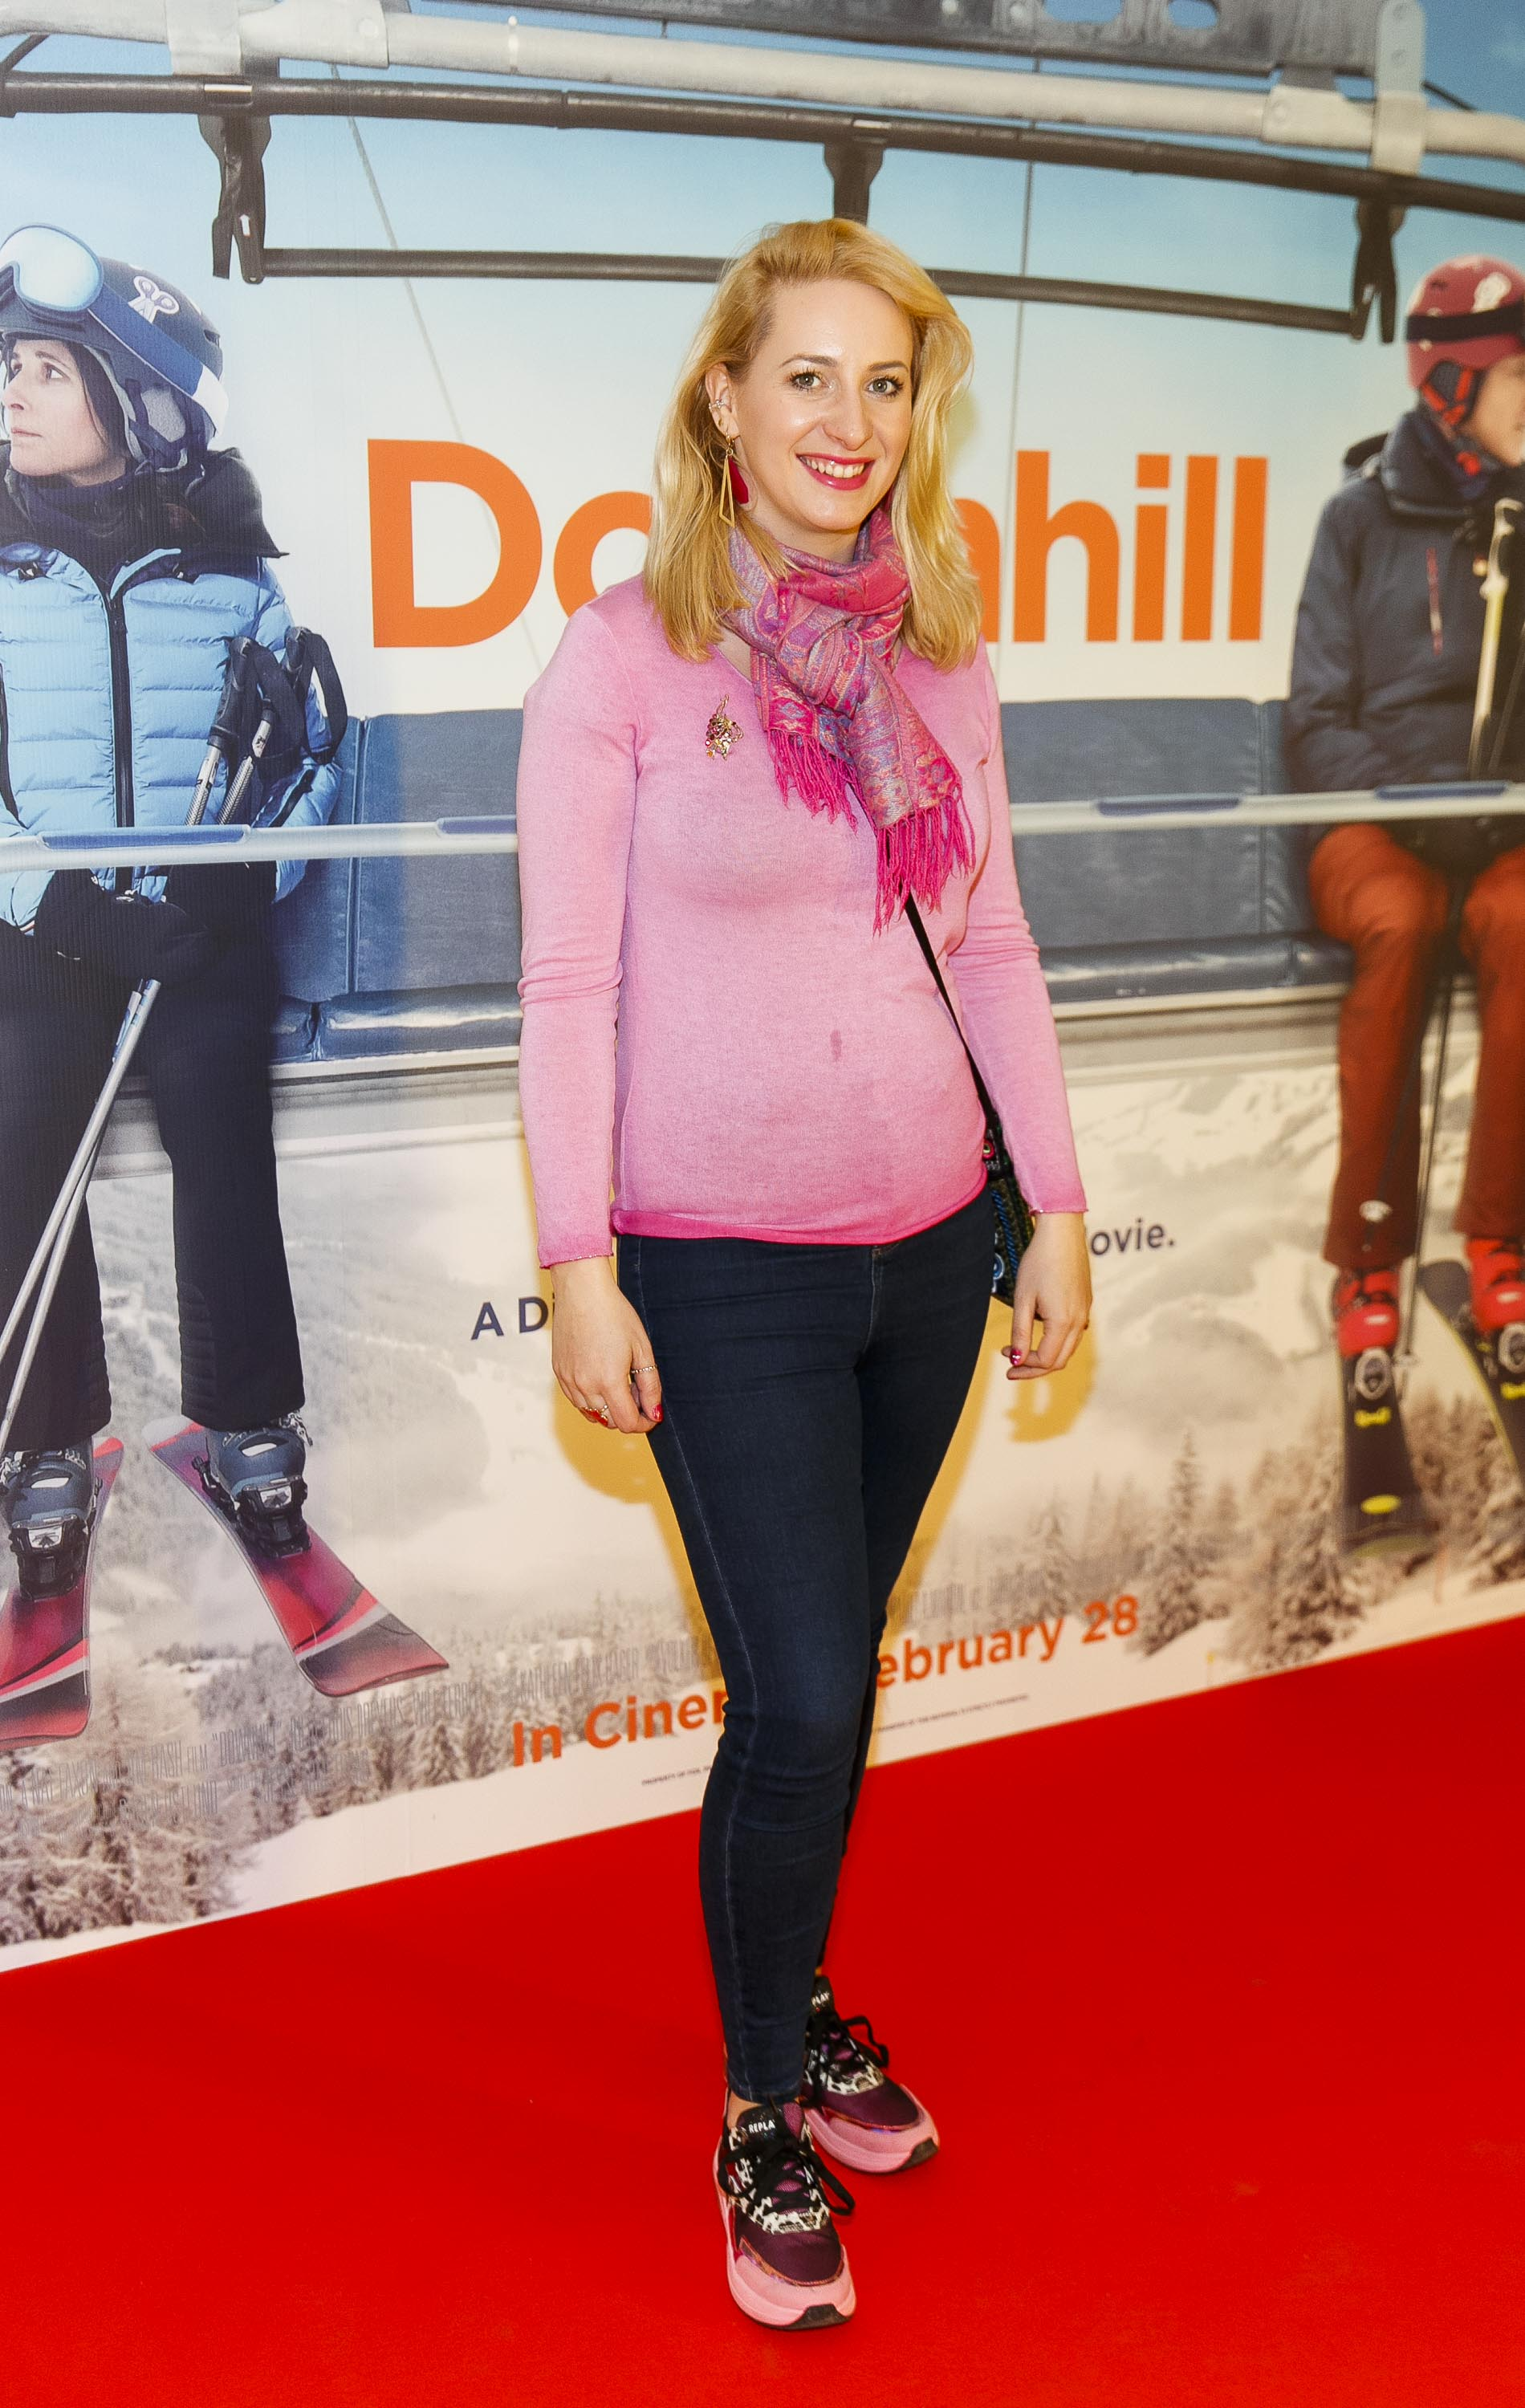 Emily Barton pictured at a special preview screening of Downhill at the Light House Cinema, Dublin. Picture: Andres Poveda.